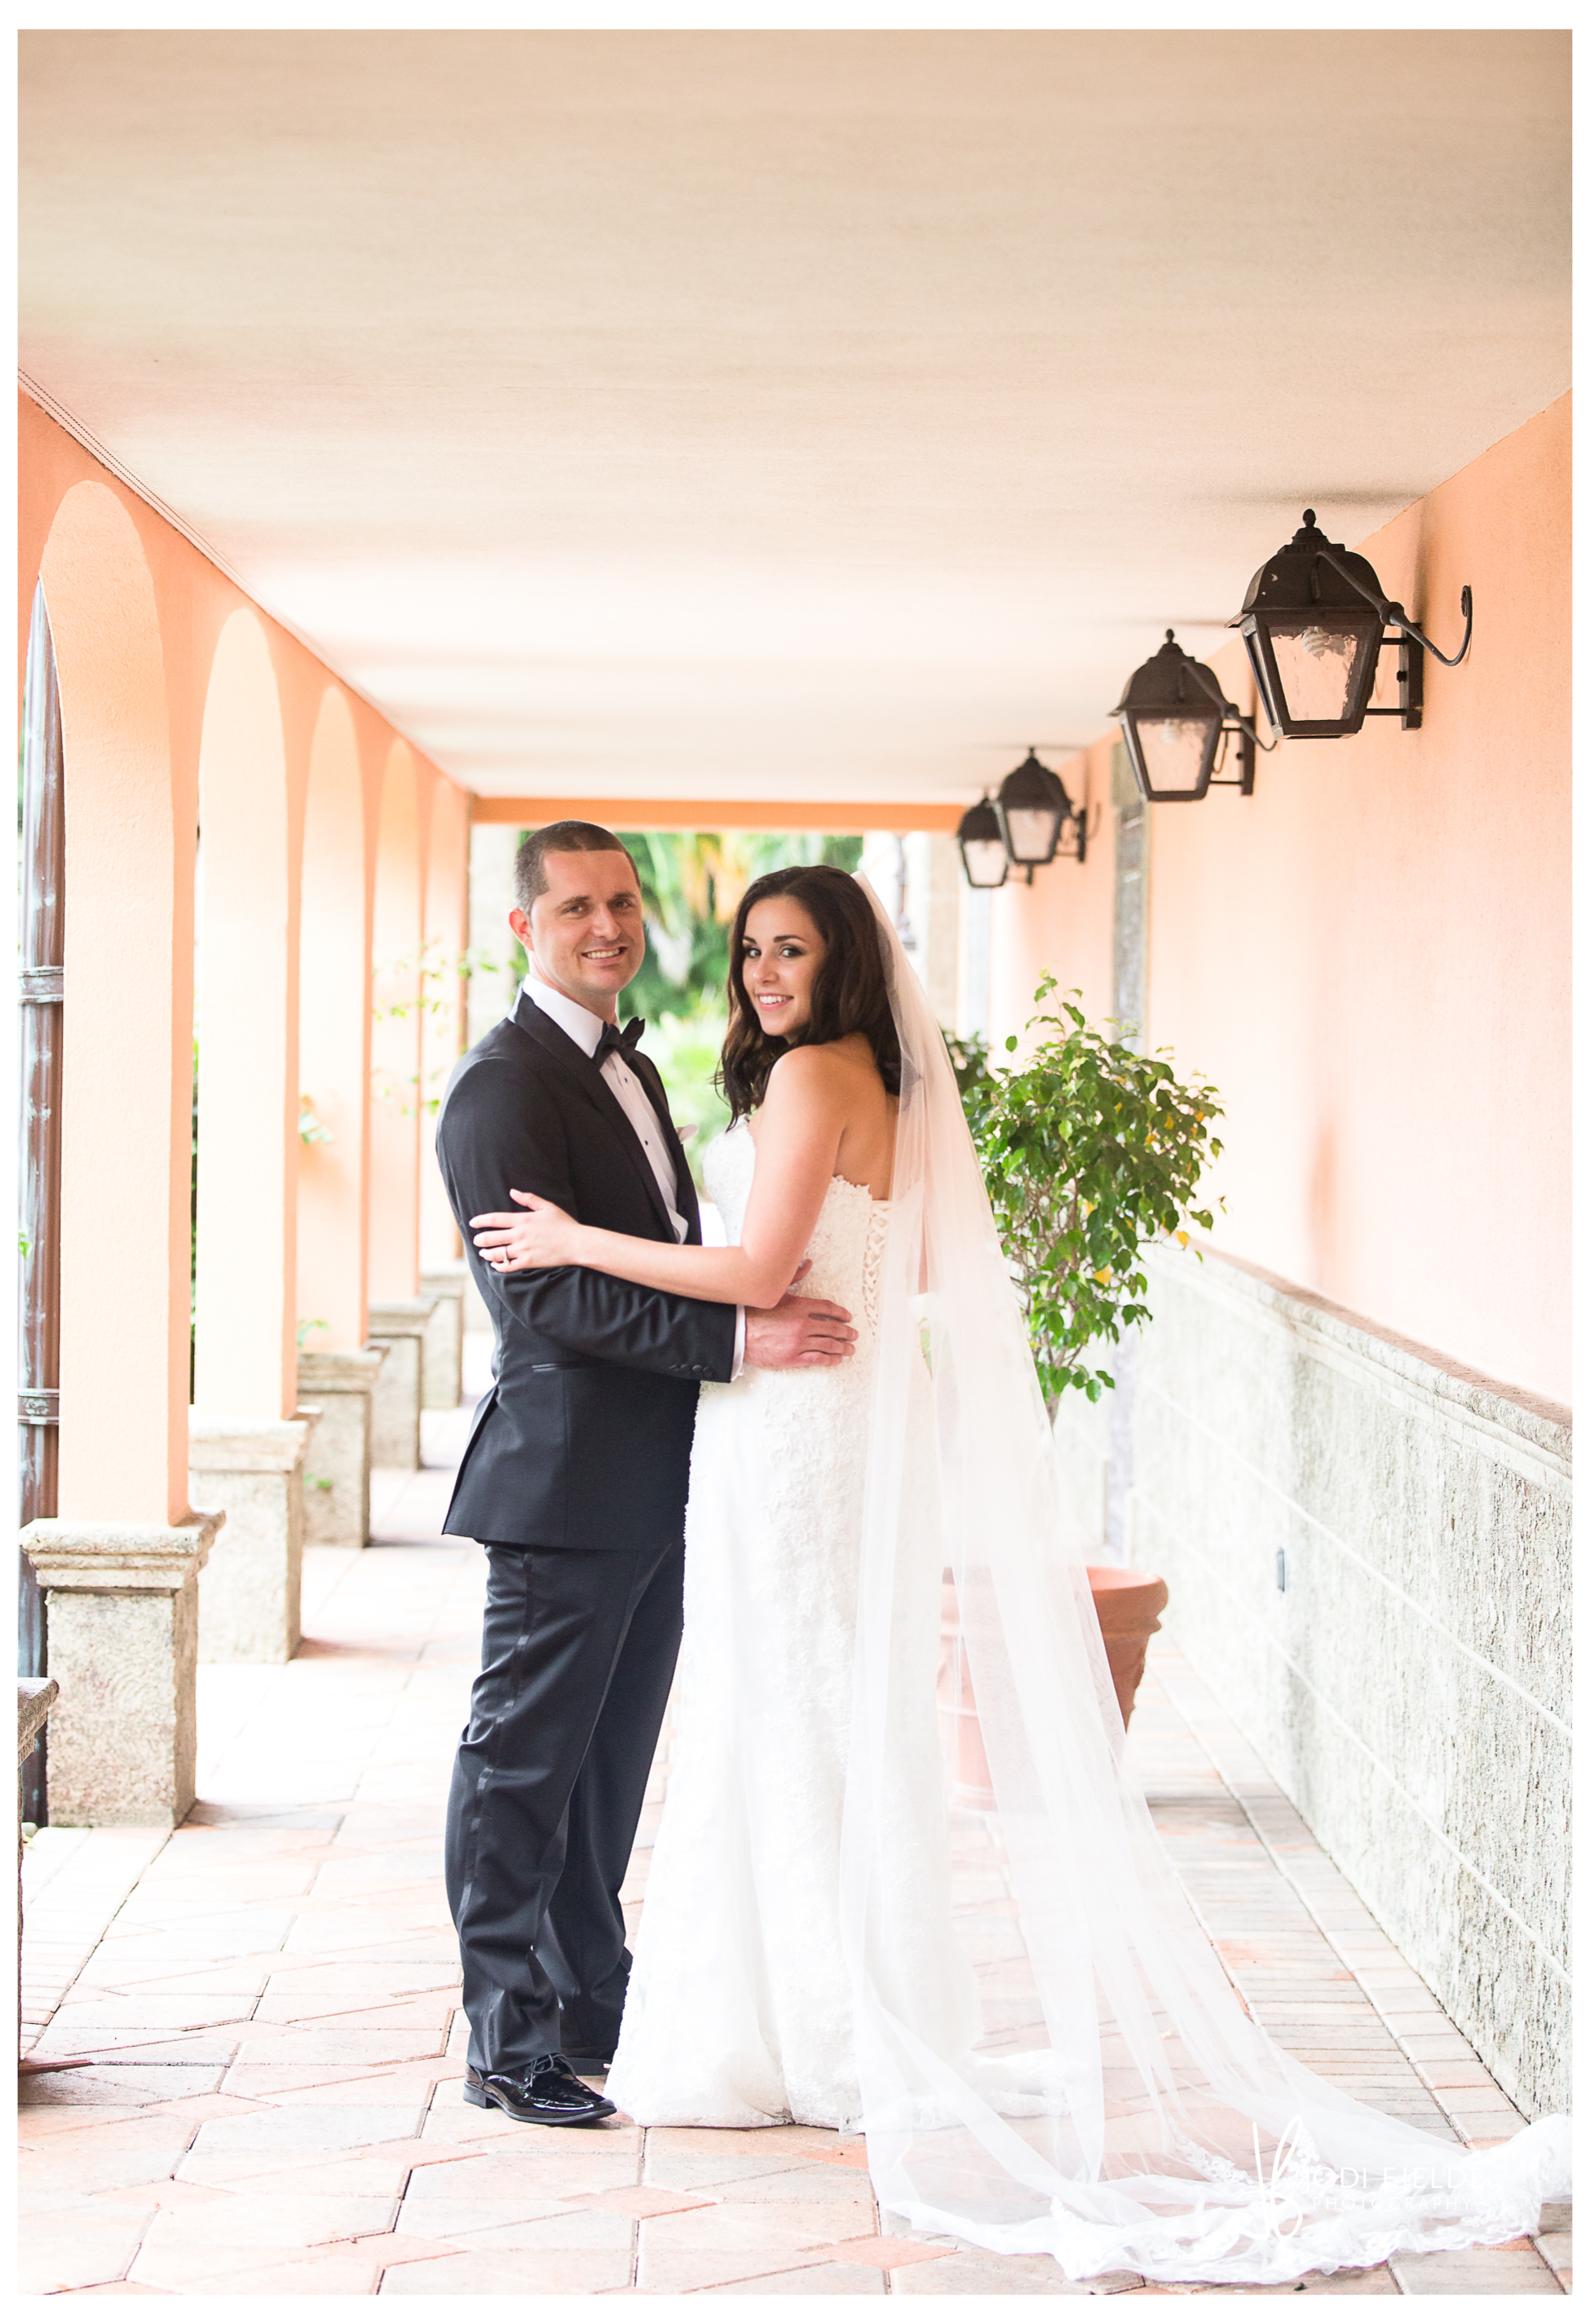 Fort-Lauderdale-Signature-grand-wedding-Paola-and-Max-married-12.jpg